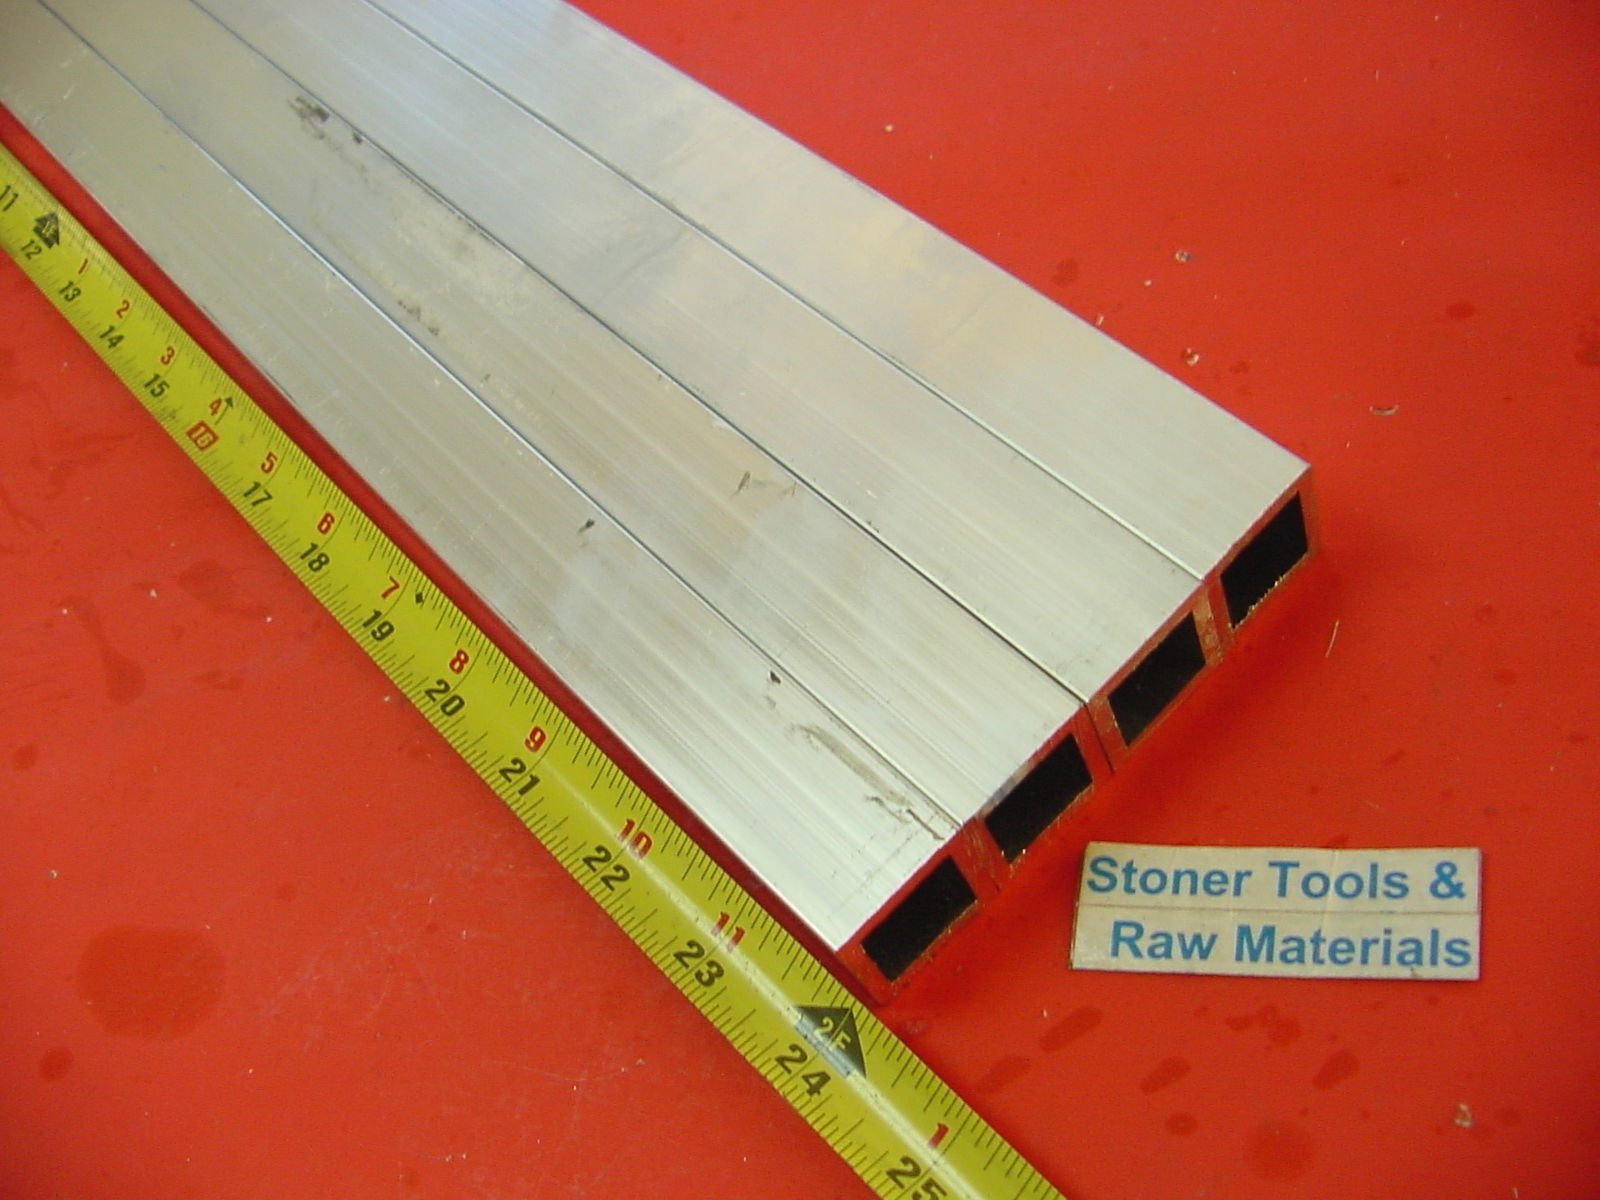 4 Pieces 1''x 1''x 1/8'' Wall x 24'' Long ALUMINUM SQUARE TUBE 6063 T52 1.0'' OD x .745'' ID by Stoner Metals